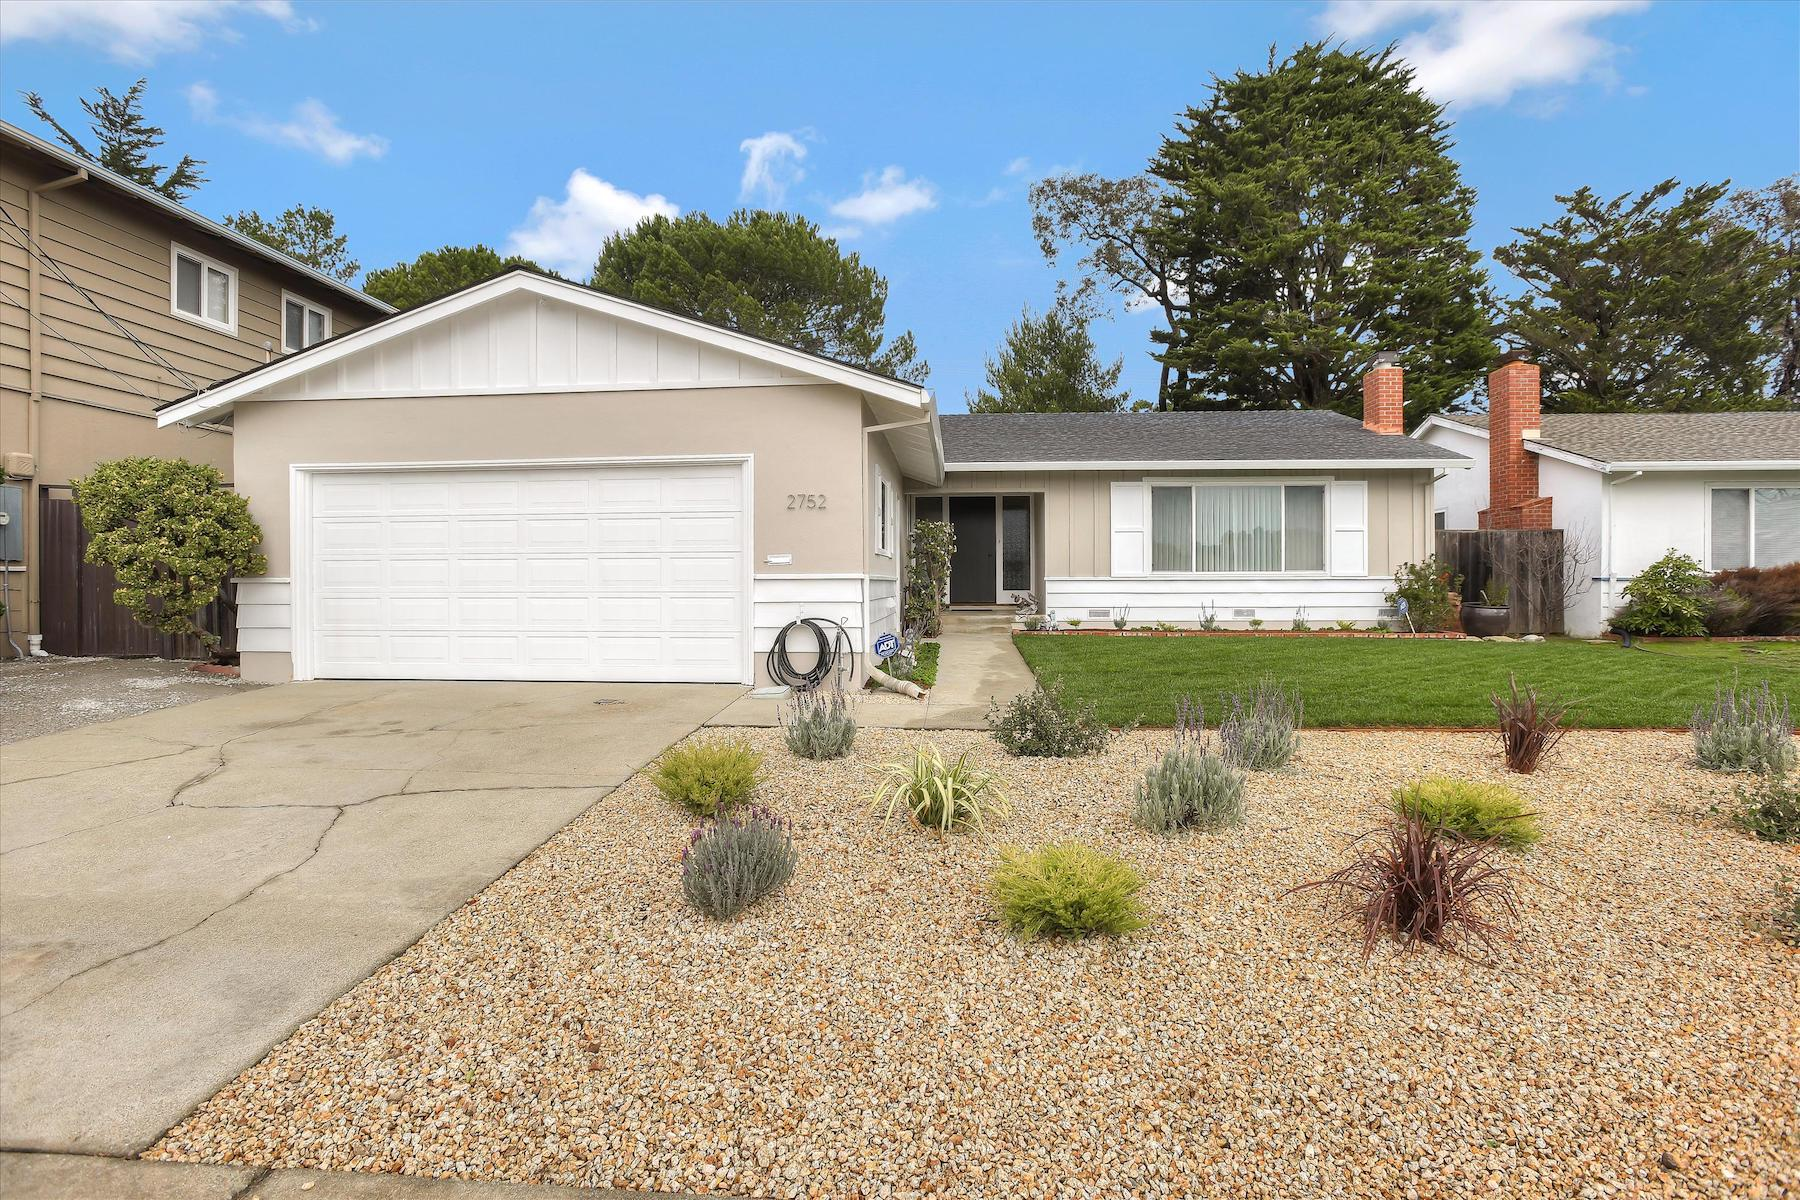 Single Family Home for Active at Extremely Well-Maintained and Centrally Located House 2752 Yosemite Drive Belmont, California 94002 United States